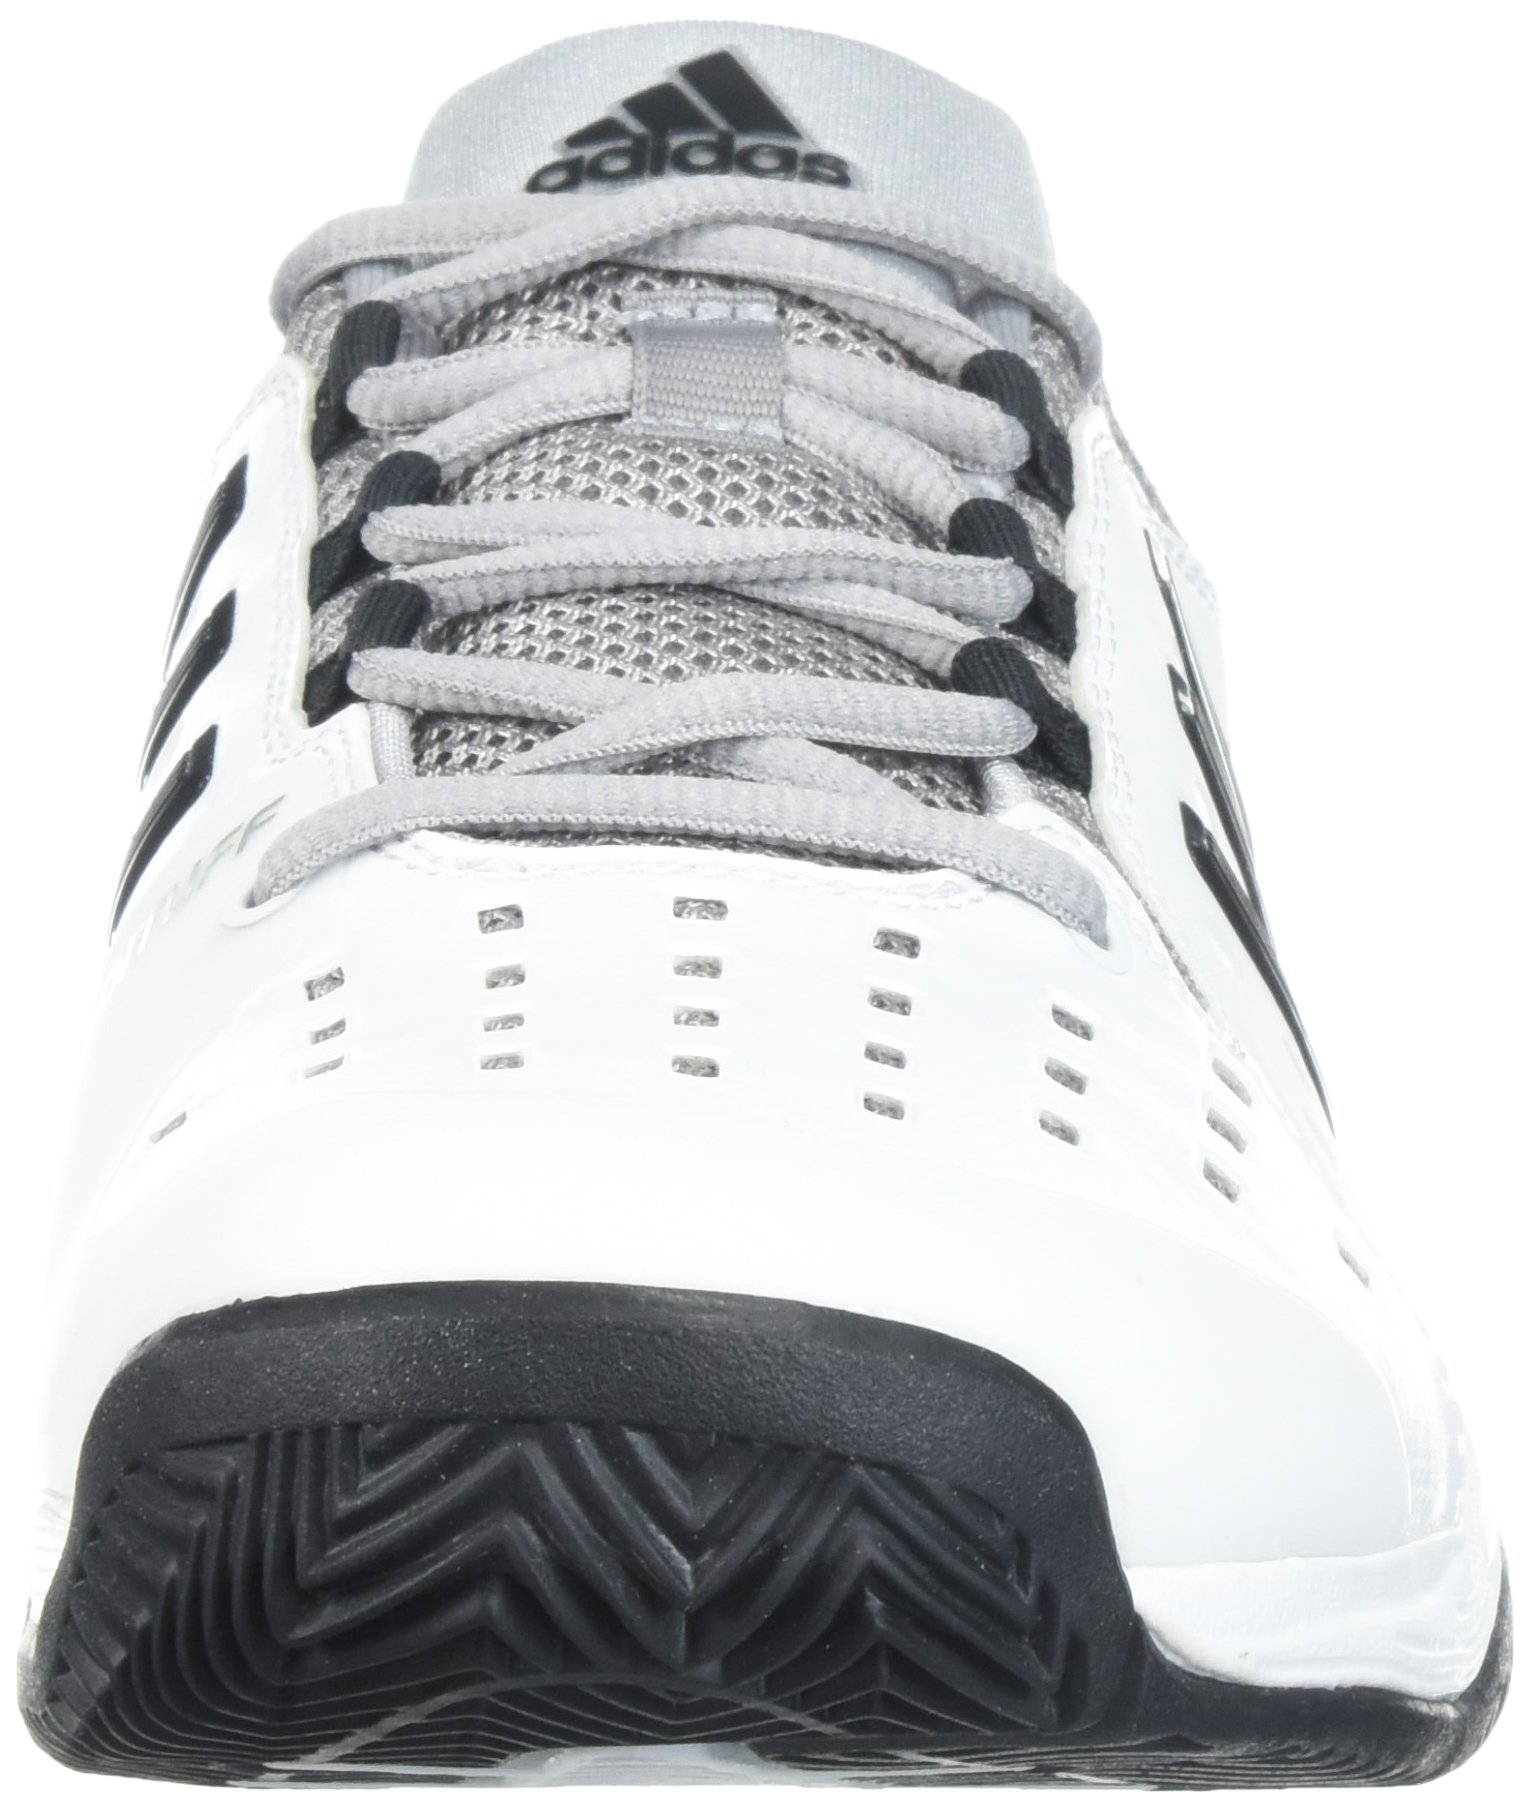 pretty nice 73348 db71c adidas Barricade Classic Wide 4E Tennis Shoe - Barricade Classic Wide 4E-M   Fashion Sneakers  Clothing, Shoes  Jewelry - tibs